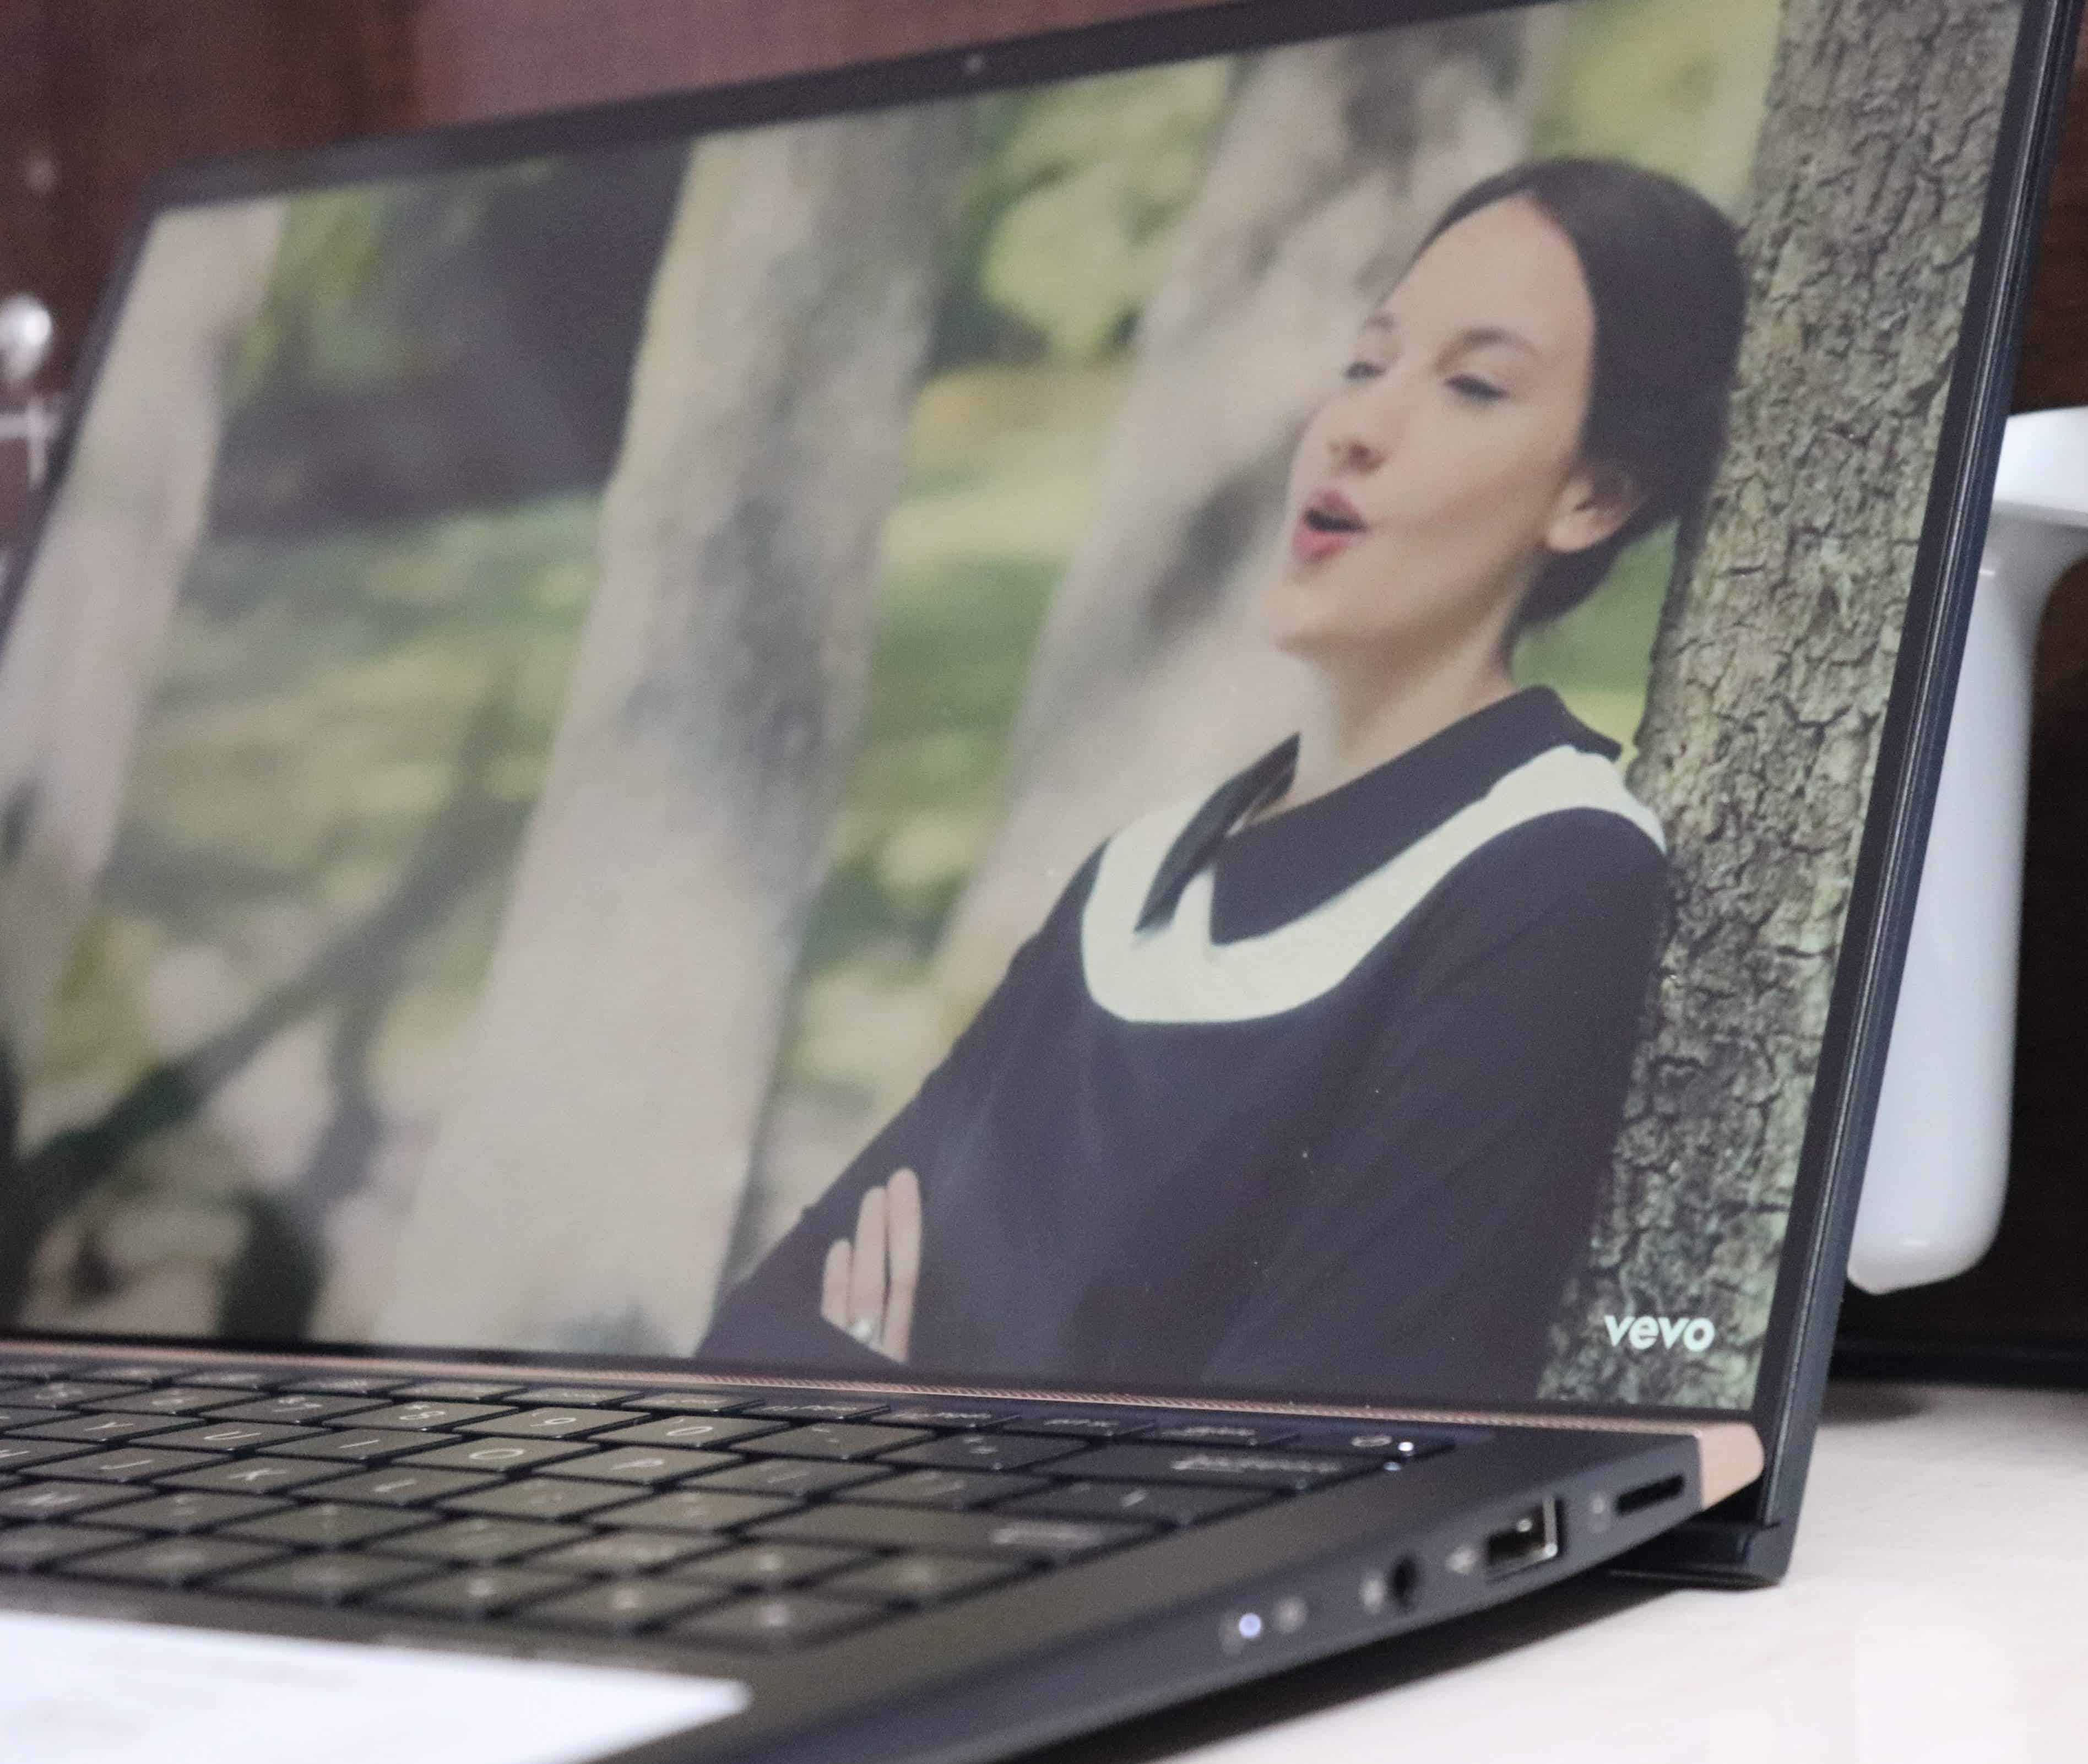 Asus Zenbook 13 UX333FN Review - The Most Compact 13-inch laptop I've used! - 5